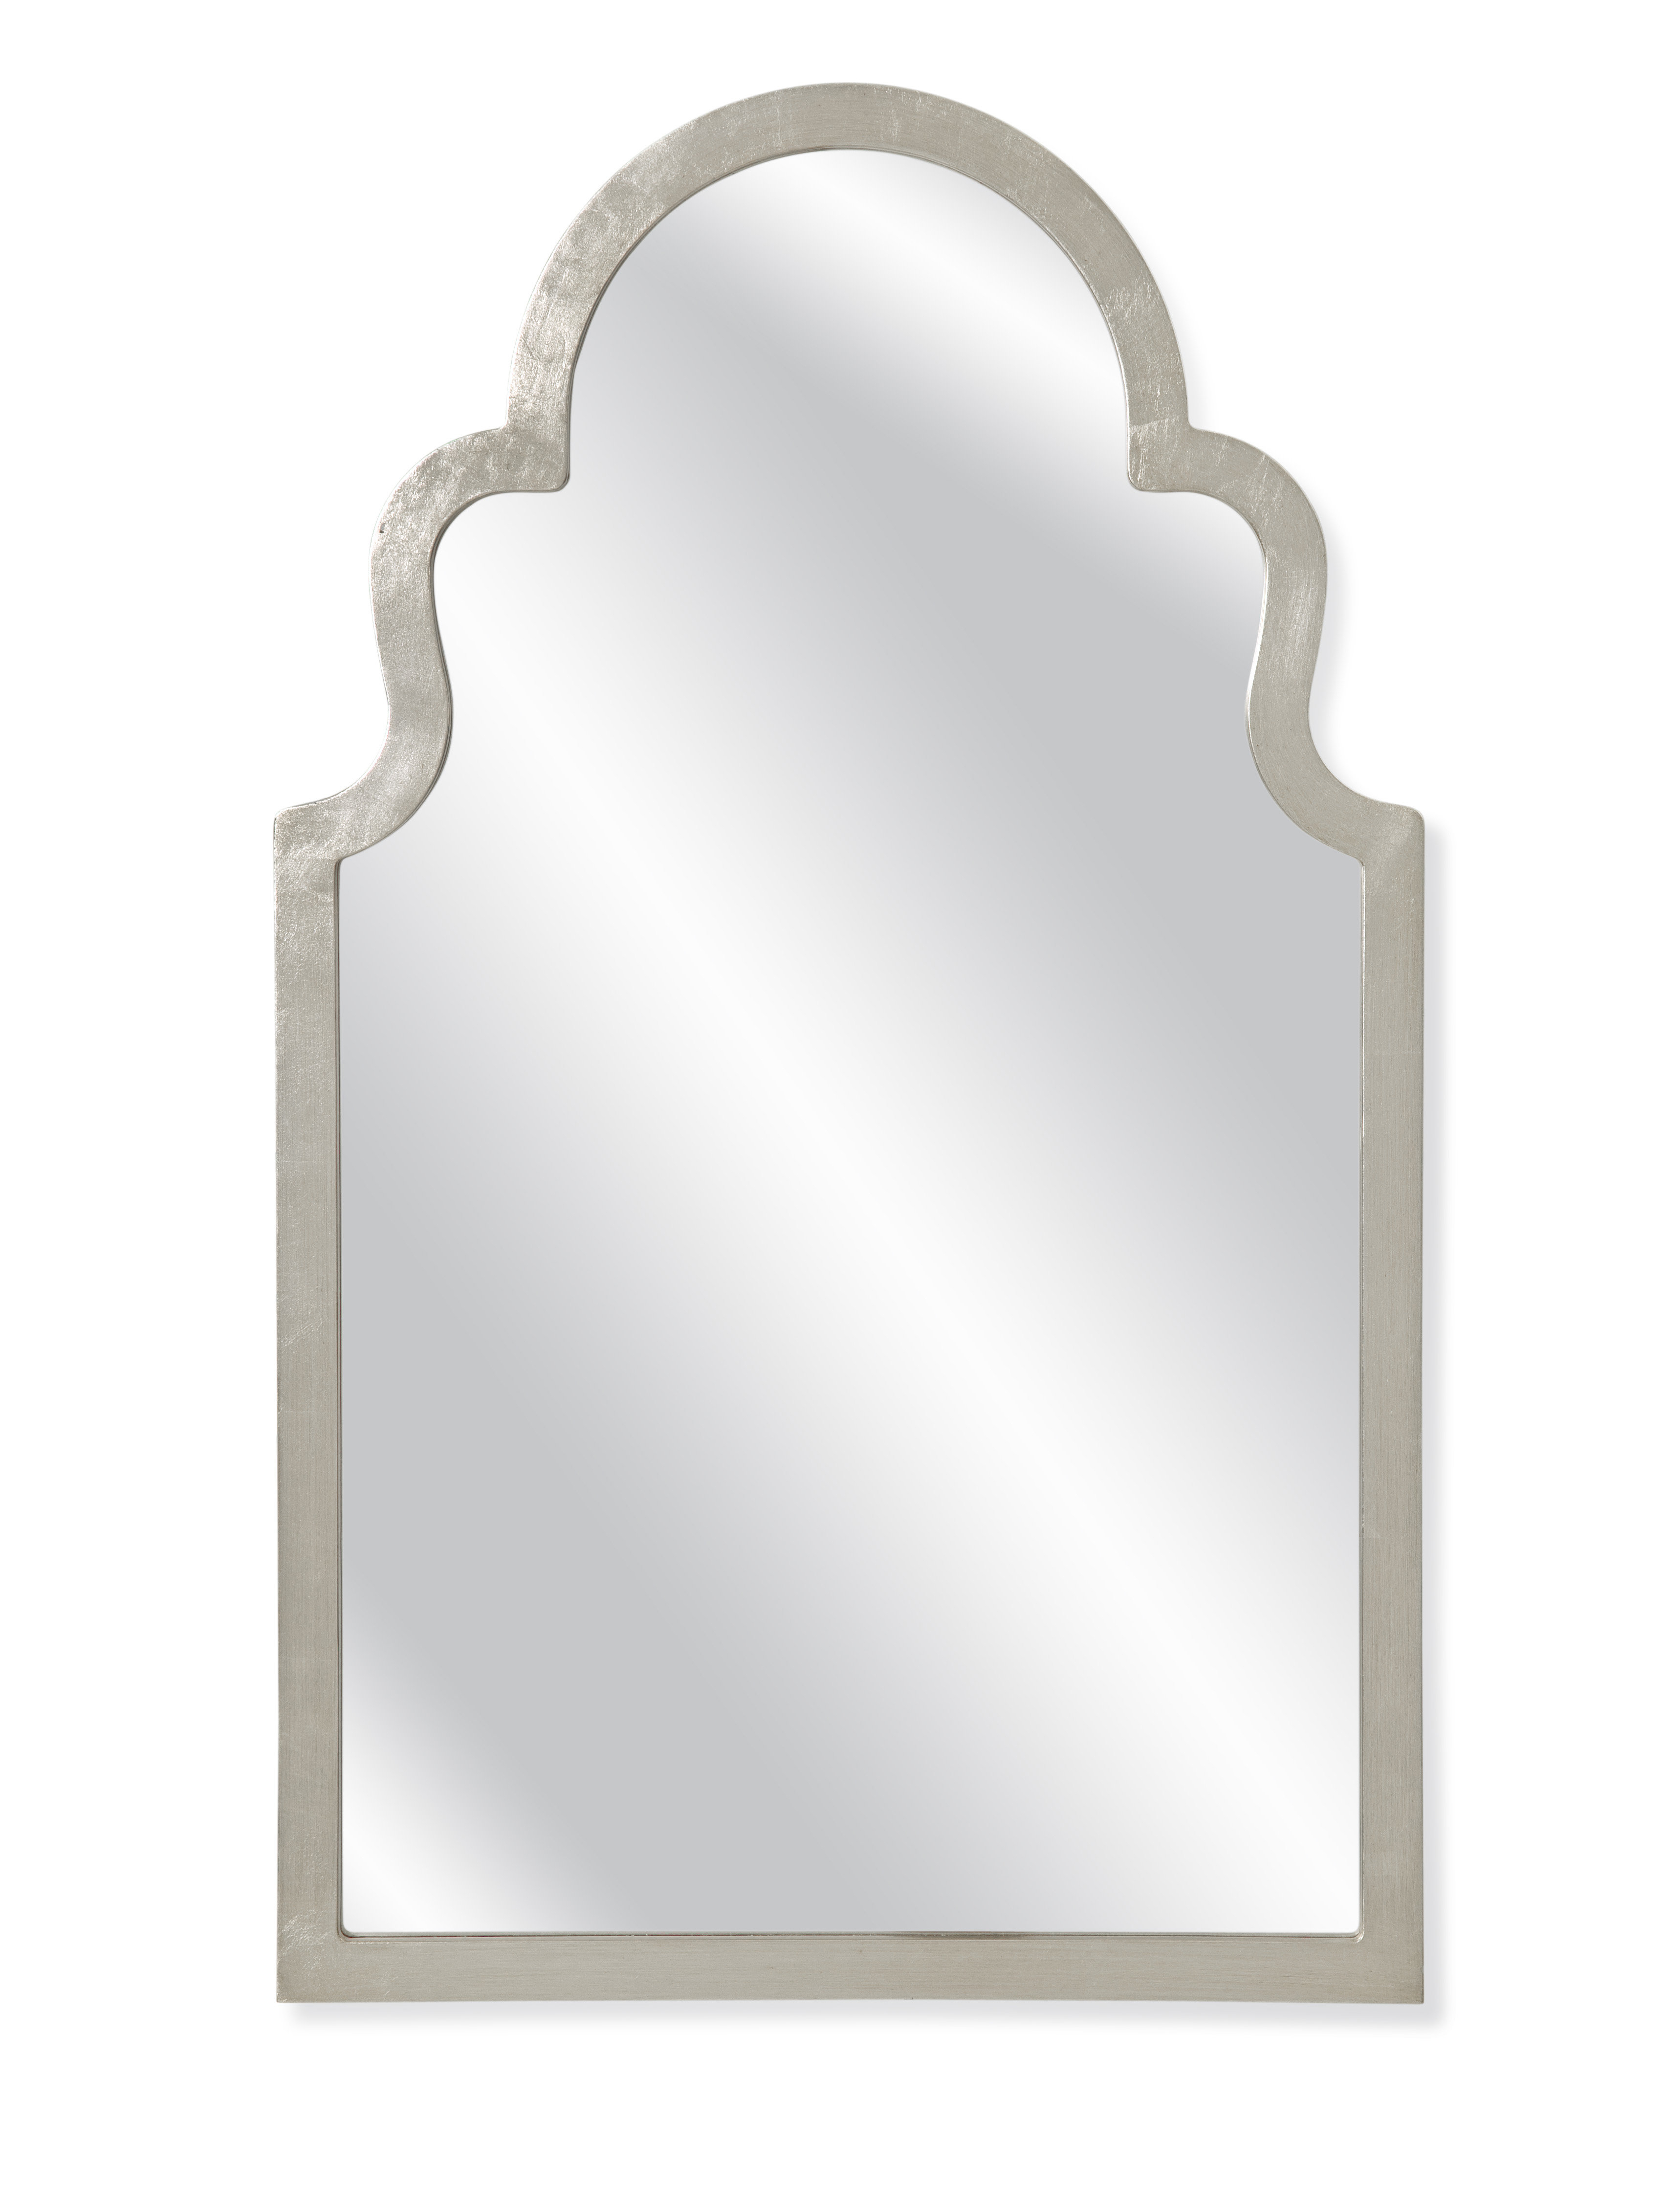 Trendy Arch Top Vertical Wall Mirror Intended For Dariel Tall Arched Scalloped Wall Mirrors (View 17 of 20)